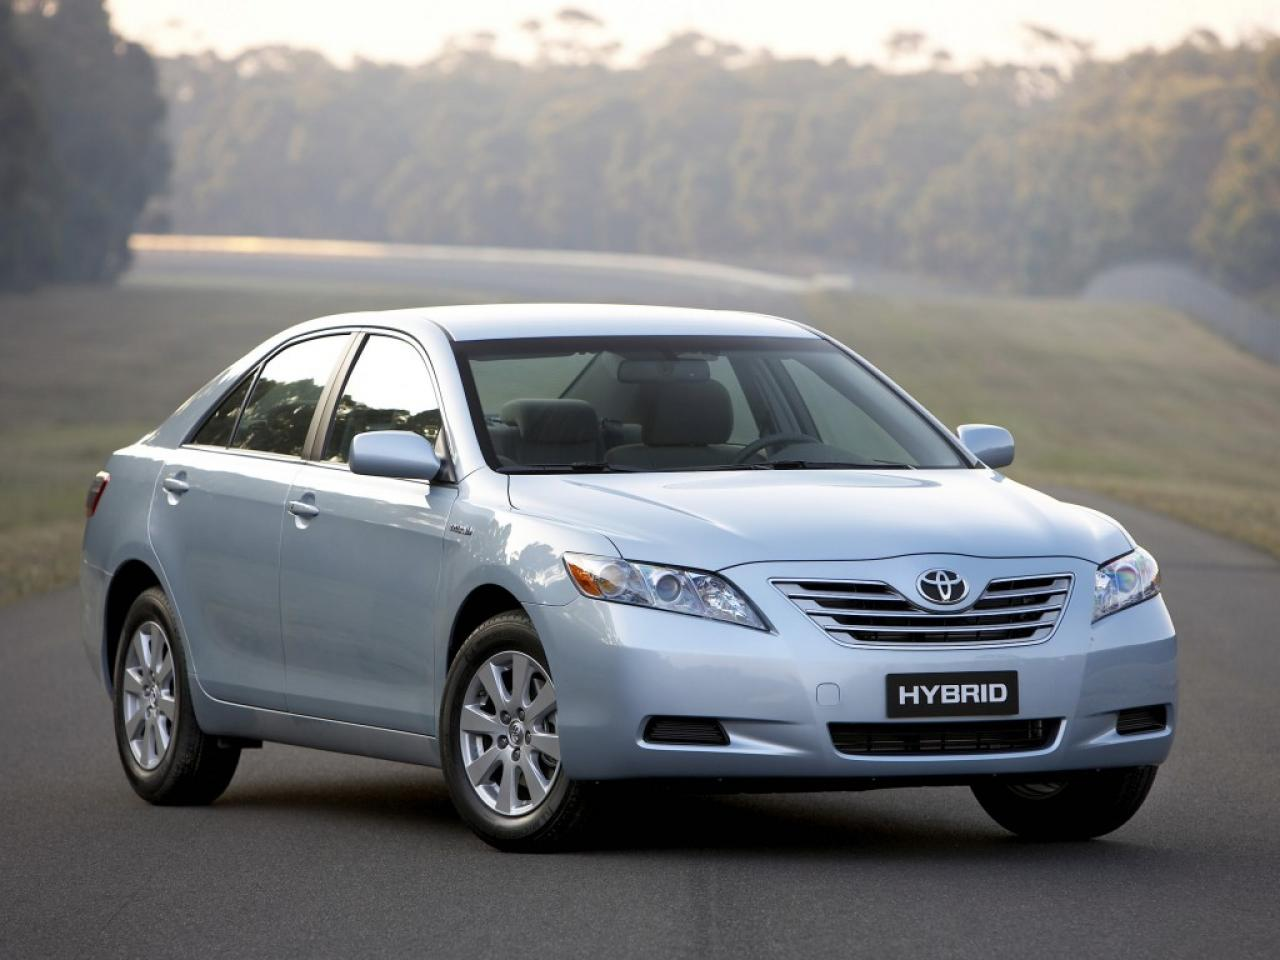 2008 toyota camry hybrid information and photos zombiedrive. Black Bedroom Furniture Sets. Home Design Ideas